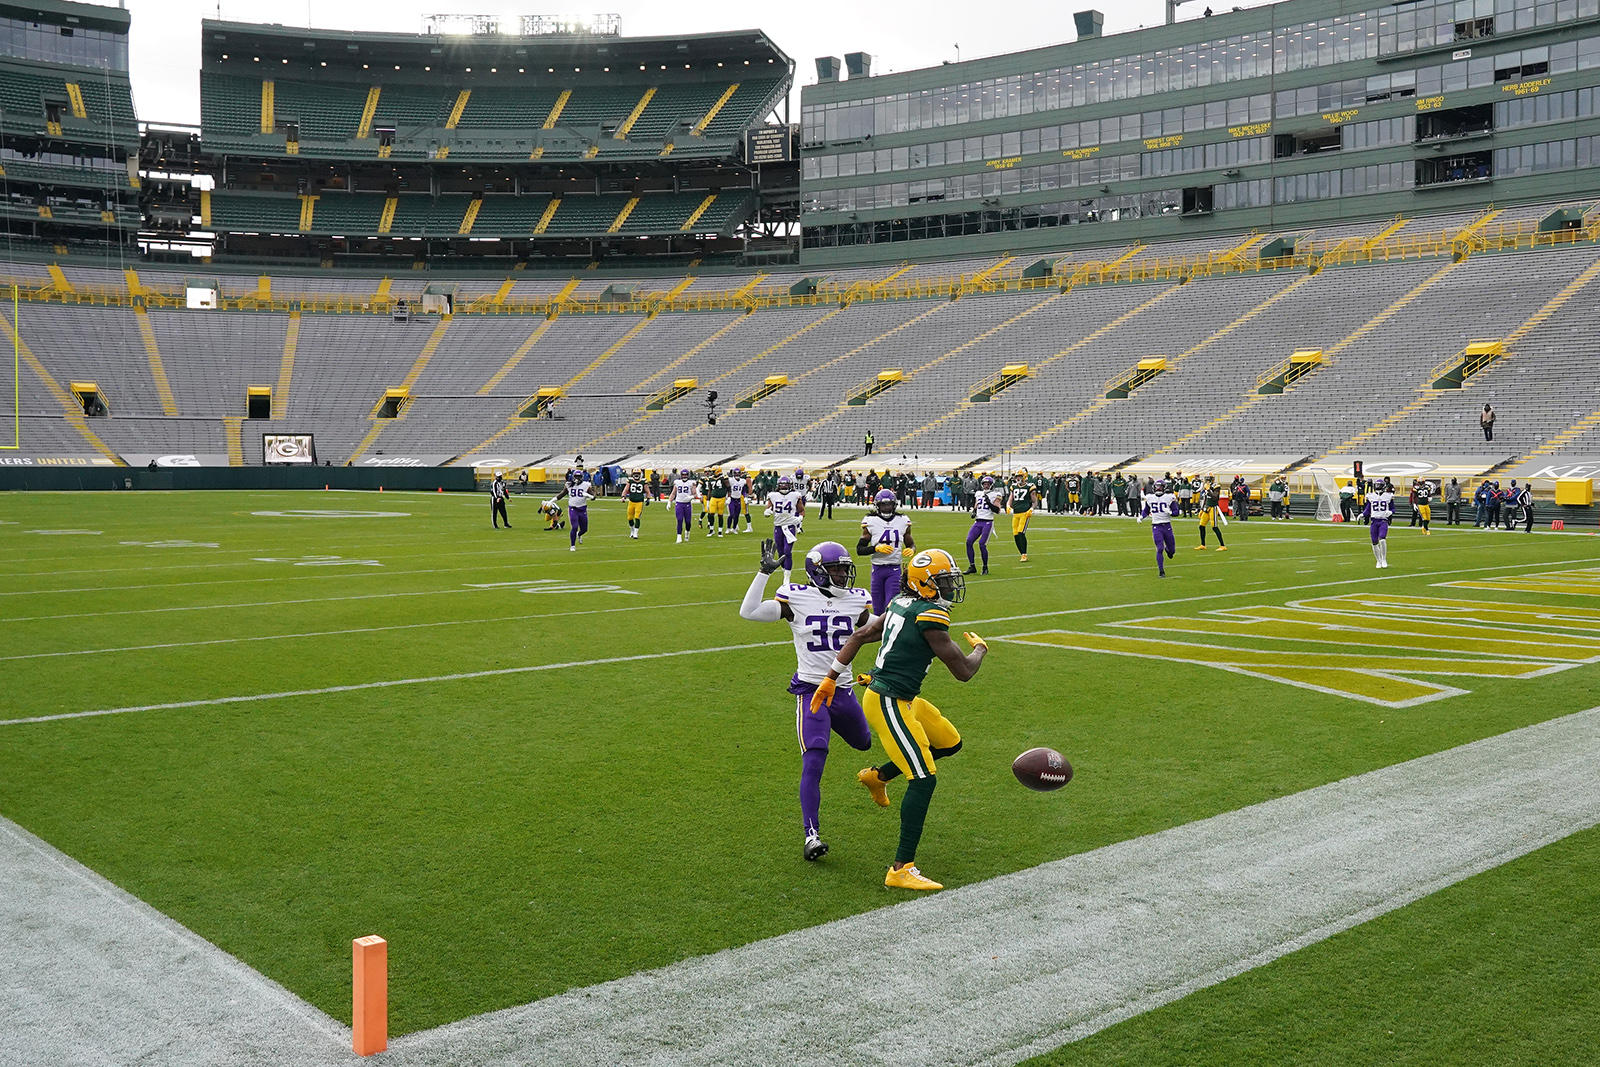 Green Bay Packers wide receiver Davante Adams (17) was unable to complete a touchdown pass as Minnesota Vikings cornerback Mark Fields (32) drew the pass interference call in the second quarter on Sunday, Nov. 1, at Lambeau Field in Green Bay, Wisconsin.